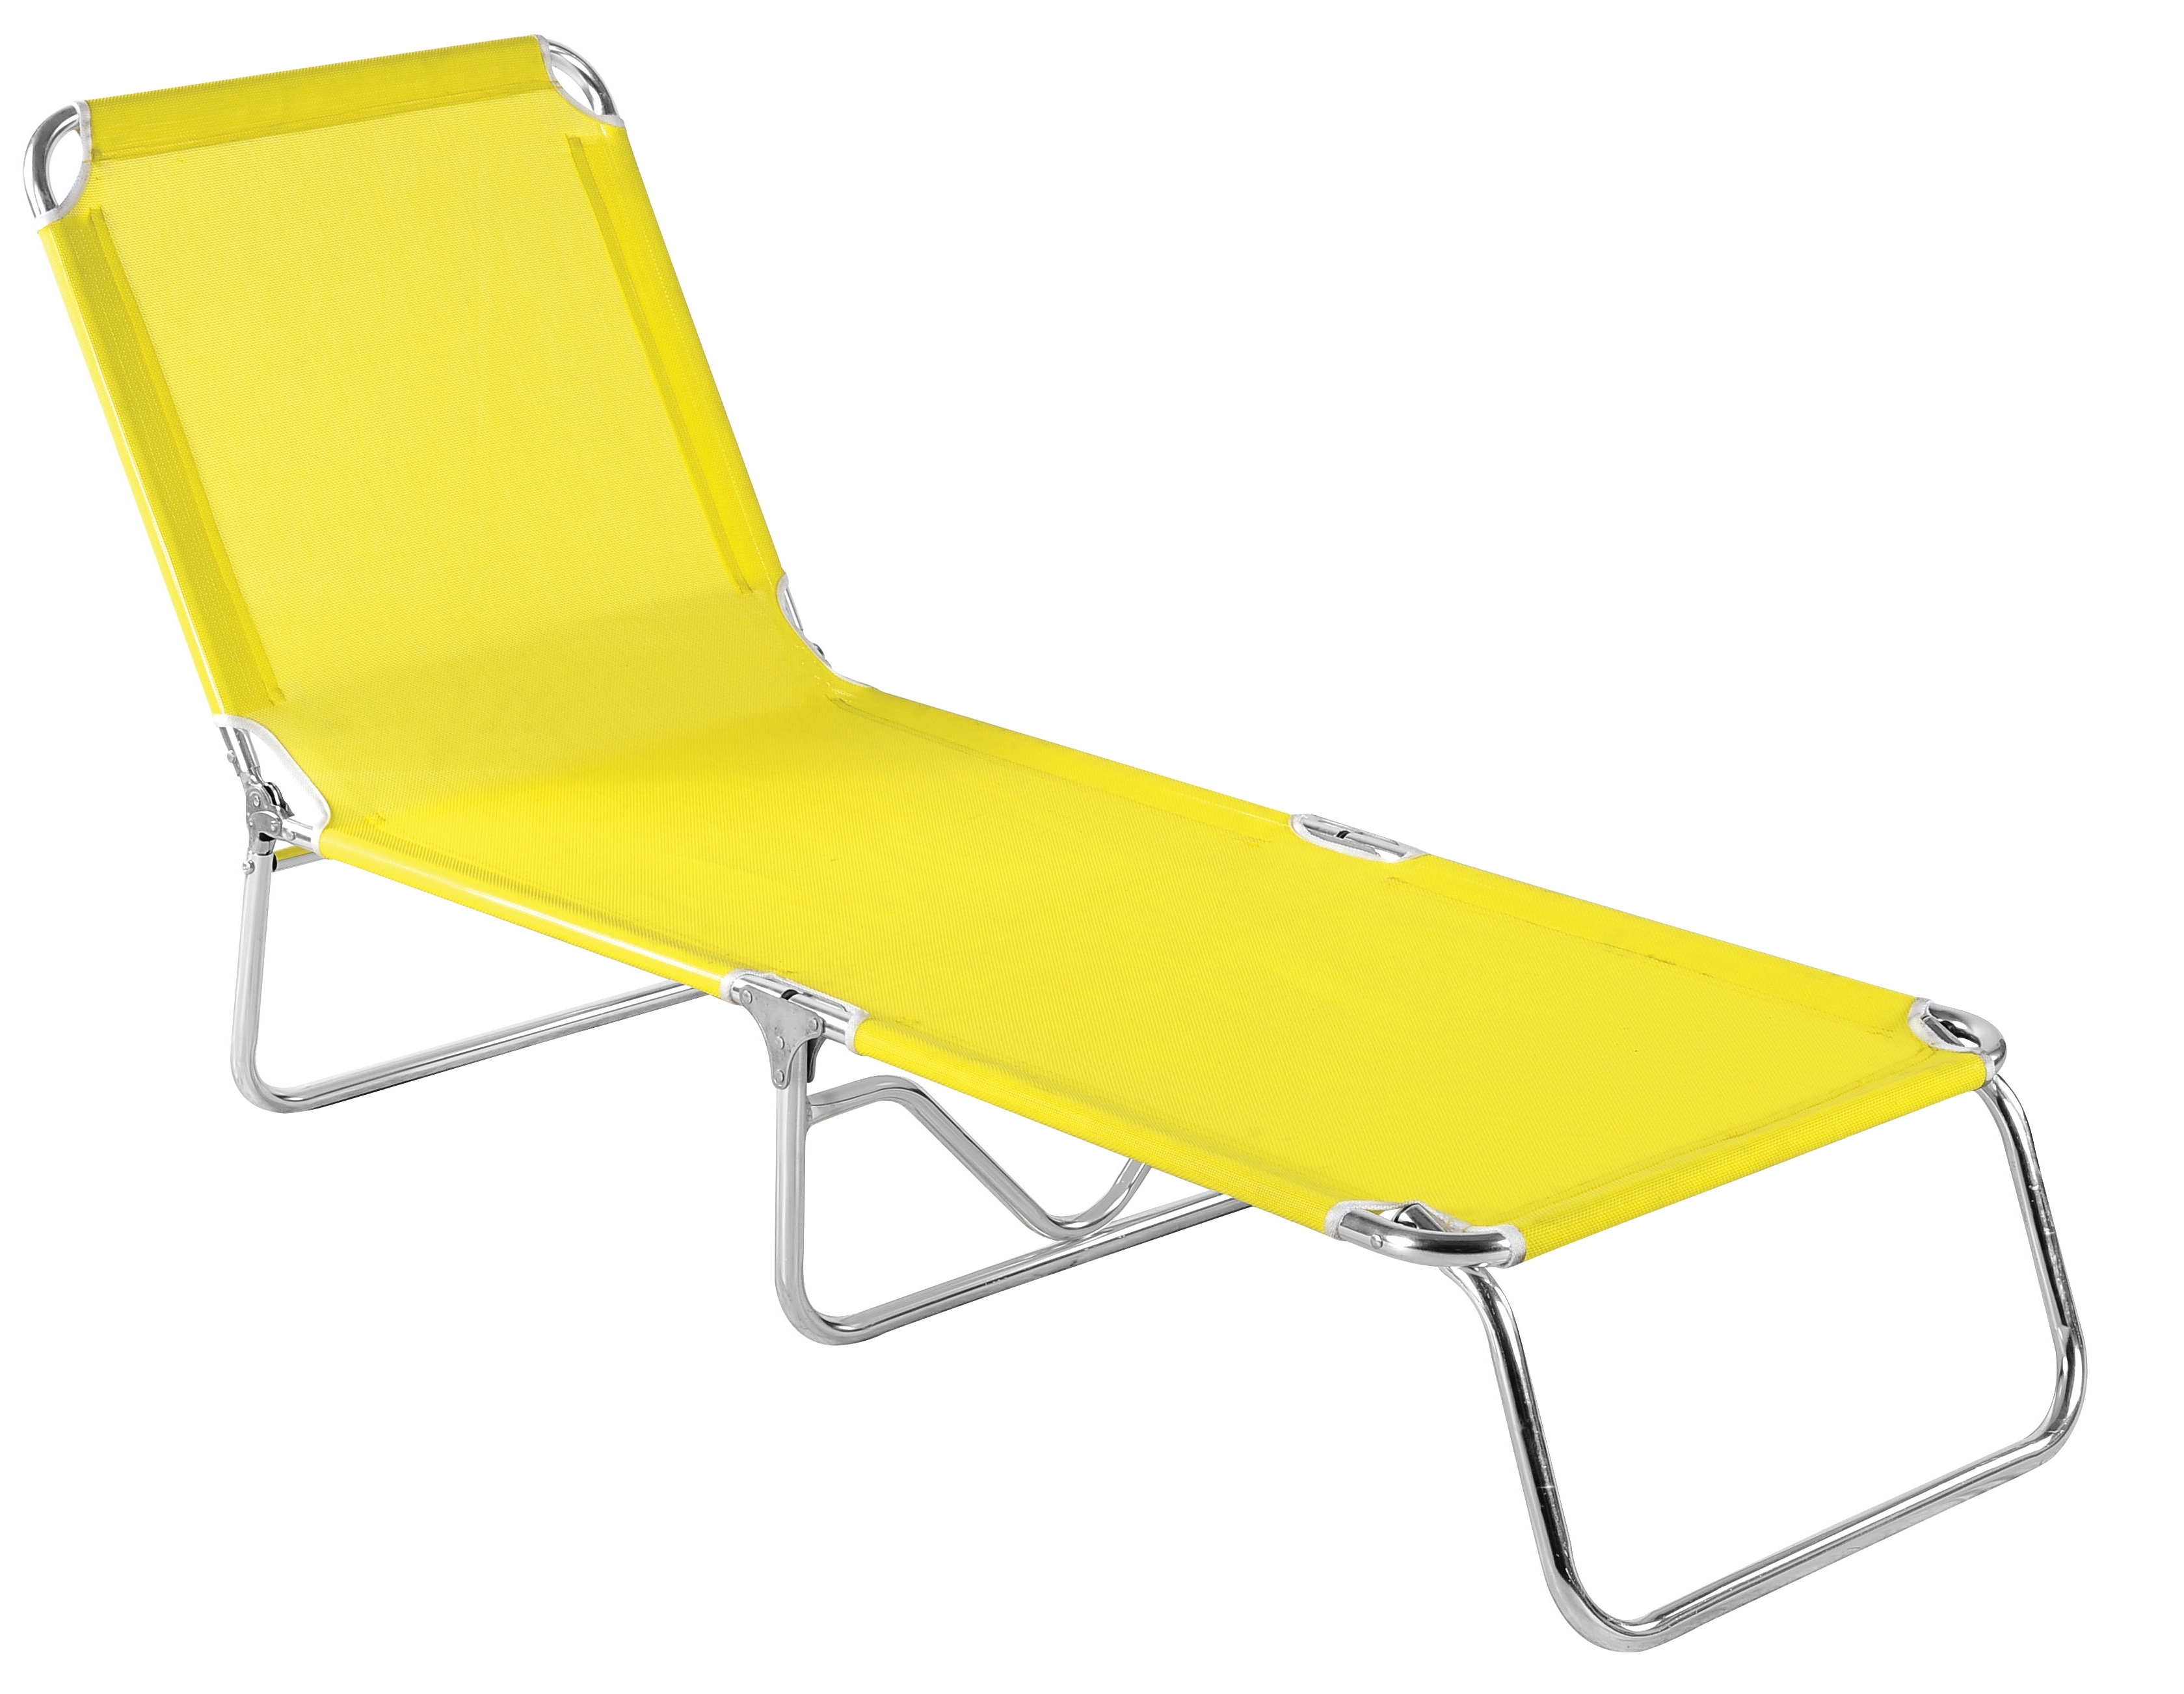 Newest Folding Beach Chaise Lounge Chairs • Lounge Chairs Ideas Regarding Beach Chaise Lounges (View 6 of 15)